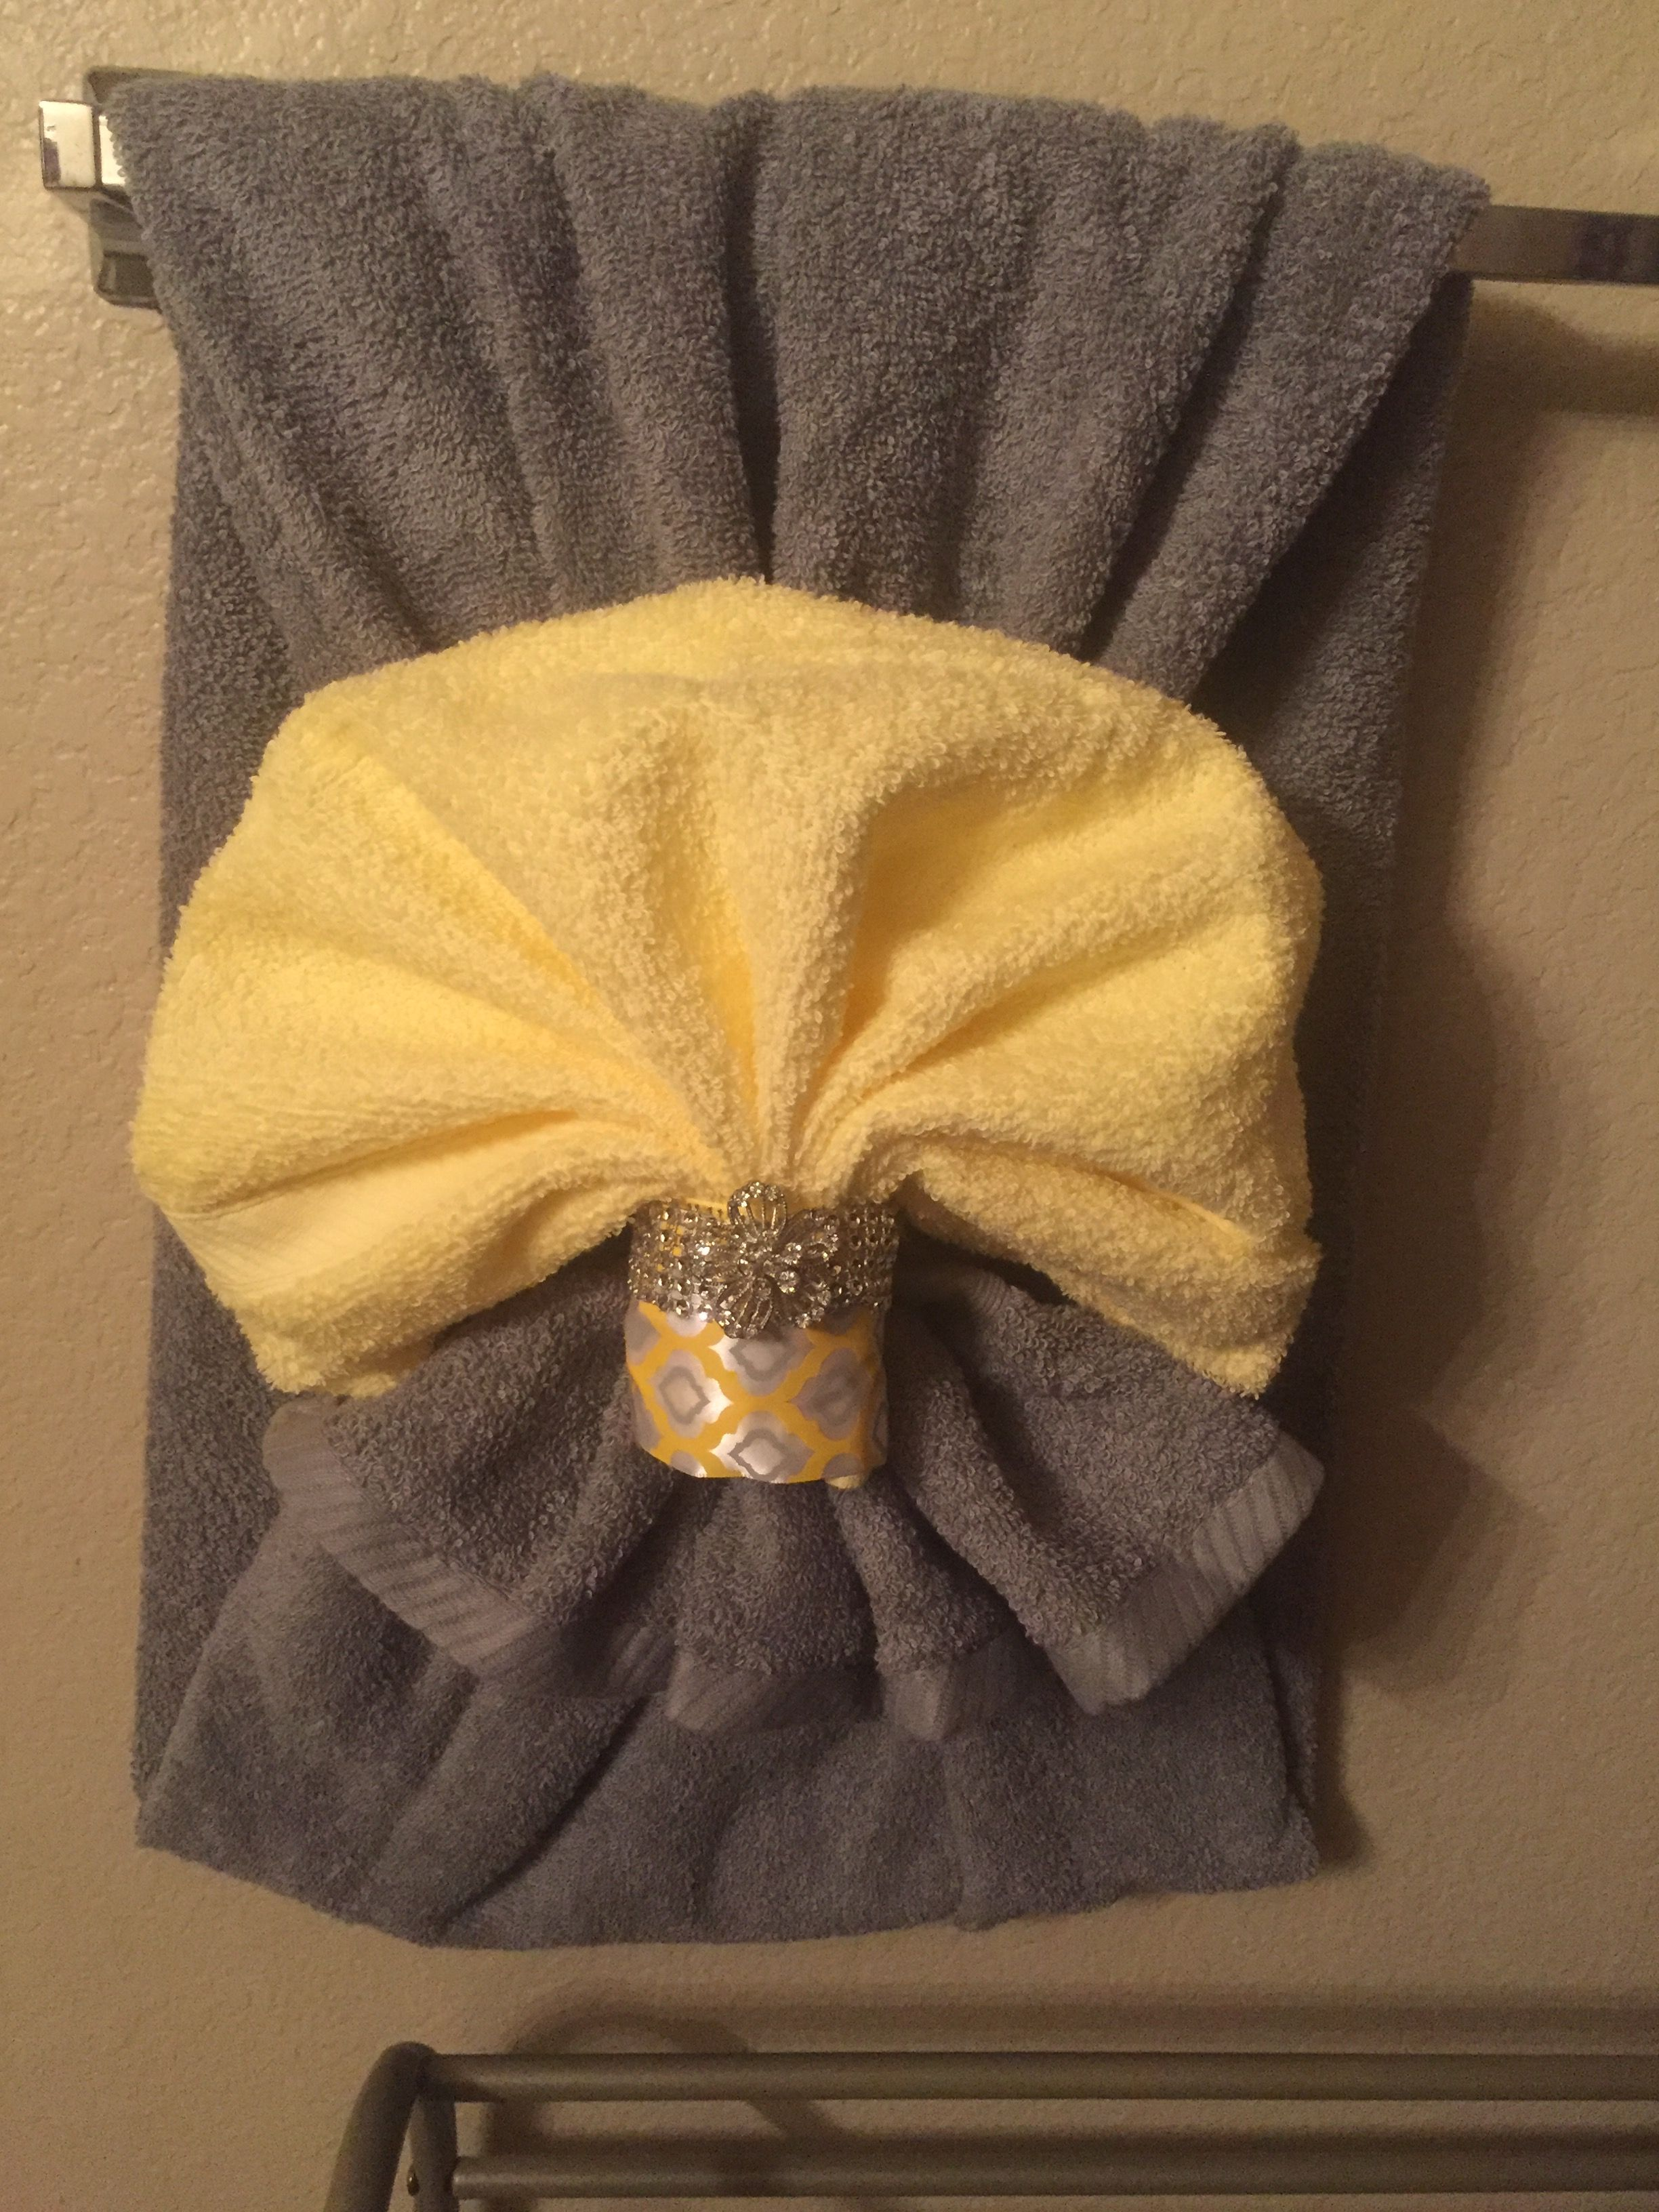 Towel Deco Bathroom Towel Decor Decorative Towels Fancy Towels